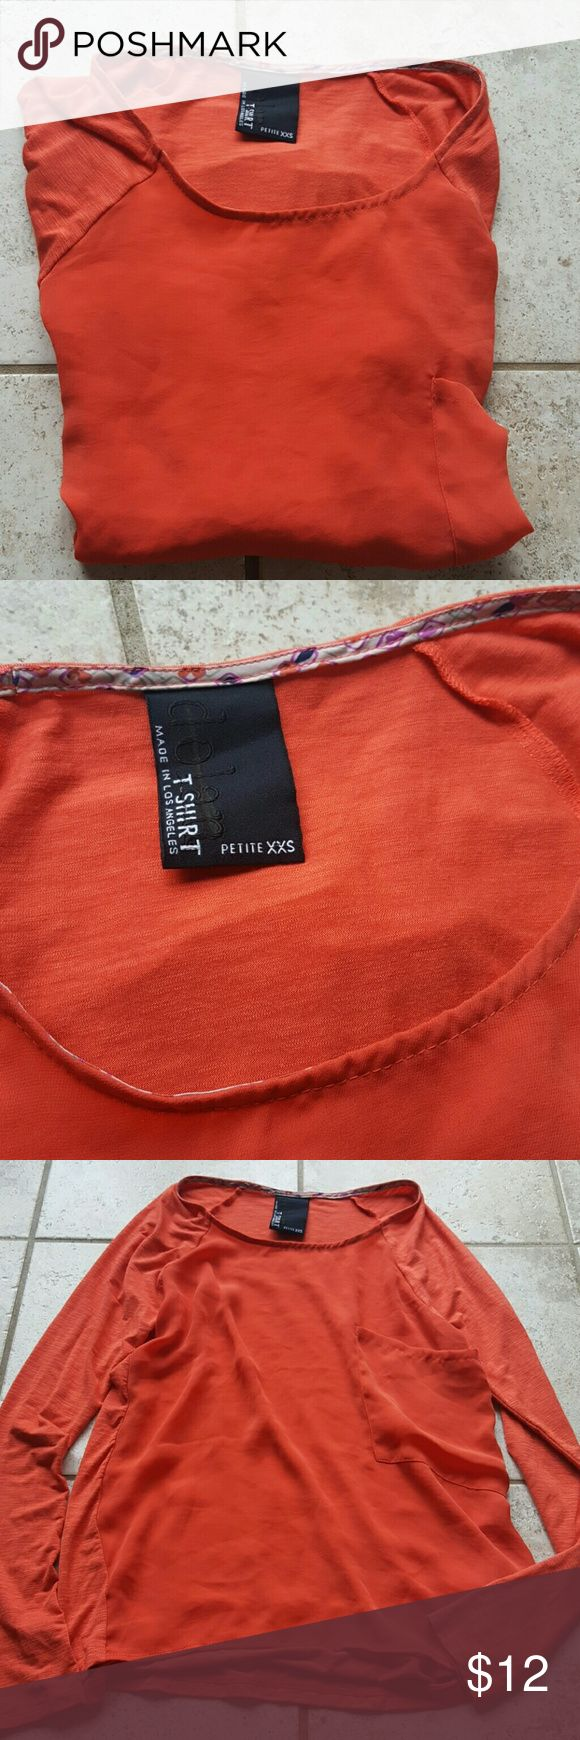 Dolan long sleeve top New without tags. Size petite extra extra small. Dolan t-shirt. Made in Los Angeles. Really pretty dark oranges red color. Self is 95% rayon and 5% spandex. Contrast is 100% polyester. Does have a line across the brand name on the label. Approximately 17 inches across the chest armpit to armpit laying flat and 23 inches in length. Anthropologie Tops Tees - Long Sleeve